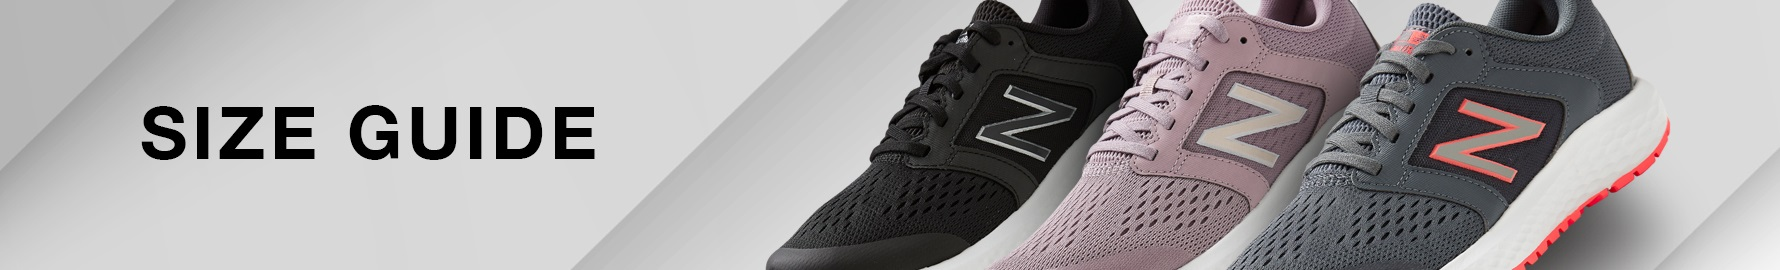 New Balance Size Guide